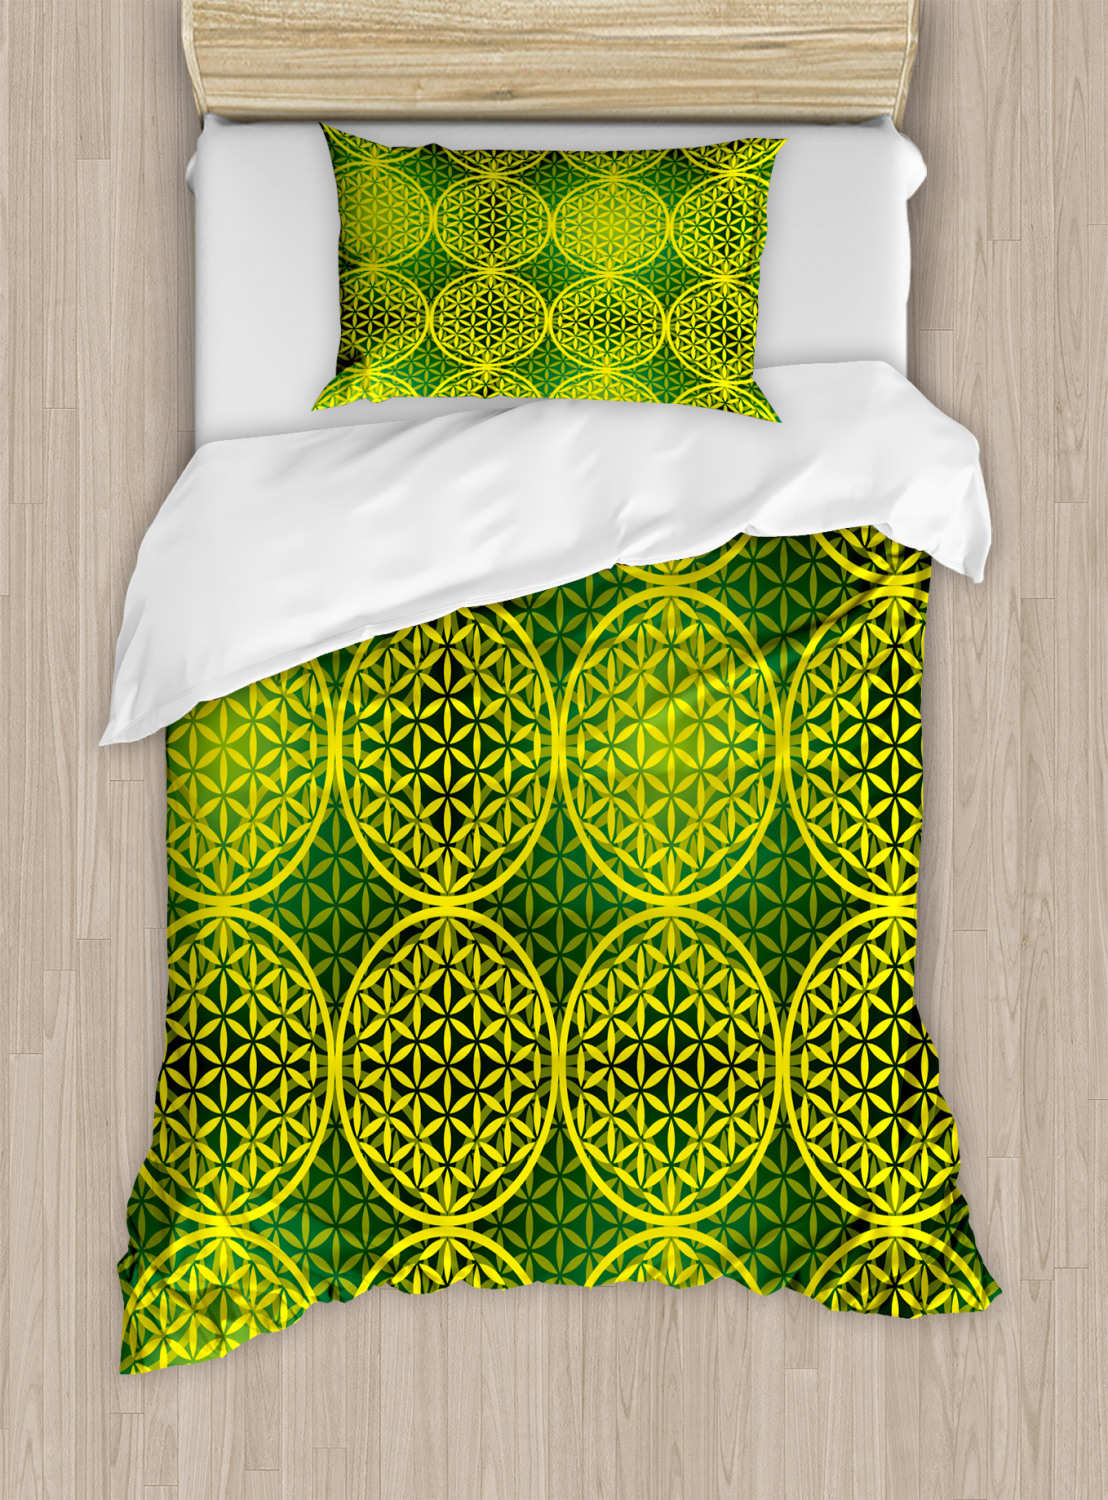 Flower-of-Life-Duvet-Cover-Set-Twin-Queen-King-Sizes-with-Pillow-Shams thumbnail 52